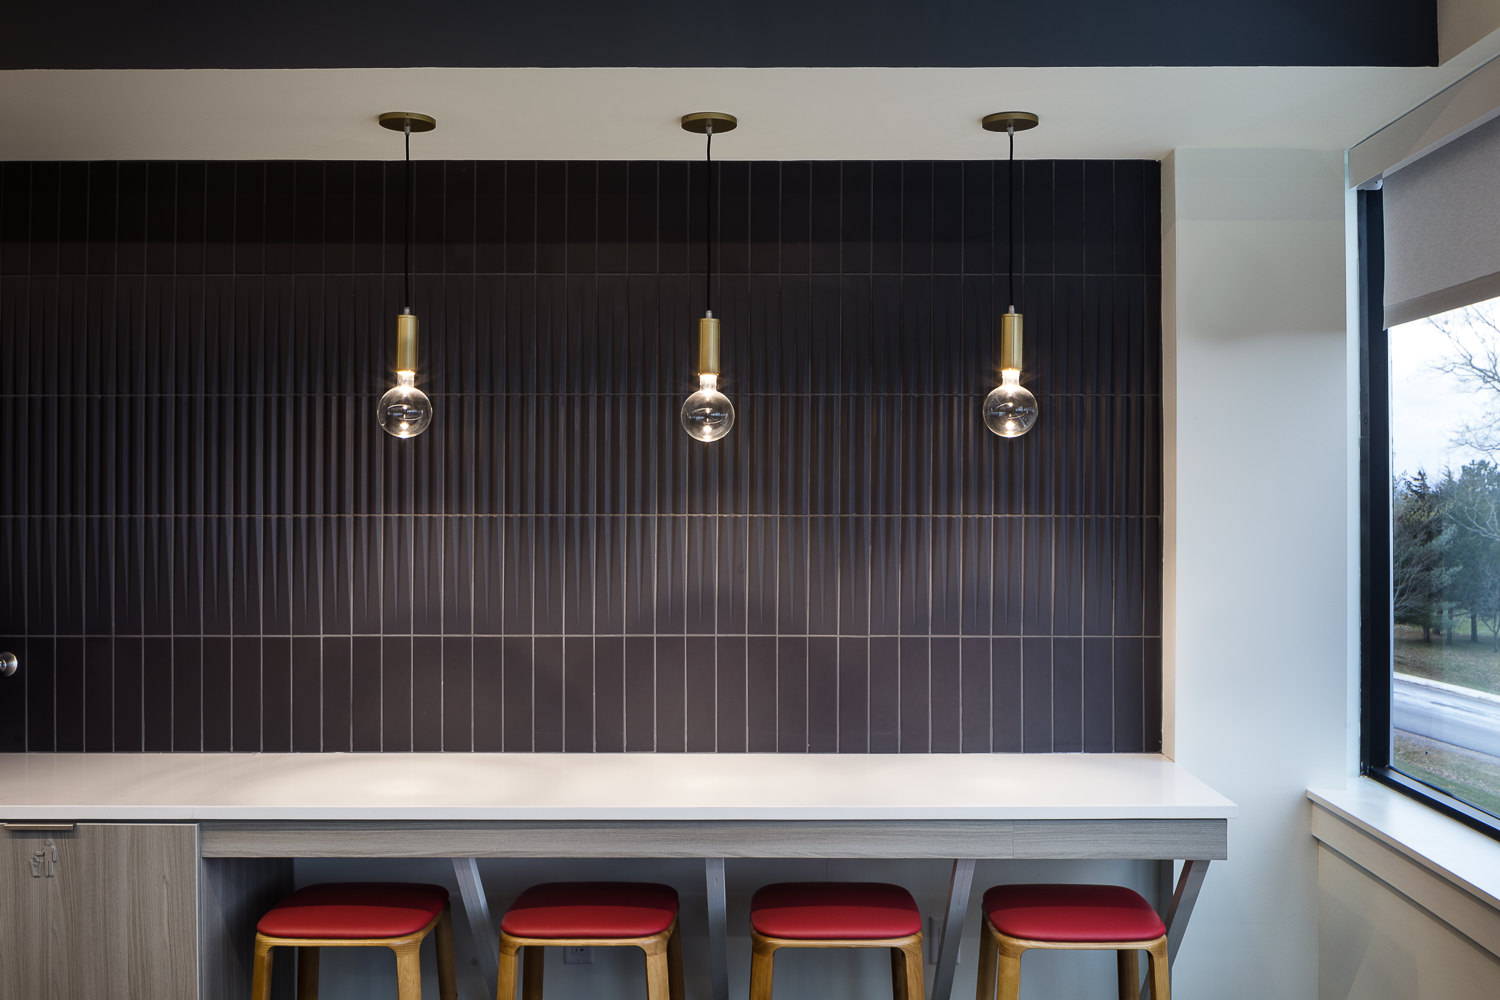 Modern break room seating in a recent corporate office renovation includes bar seating, globe pendant lights, and slate-colored vertical wall tiles.